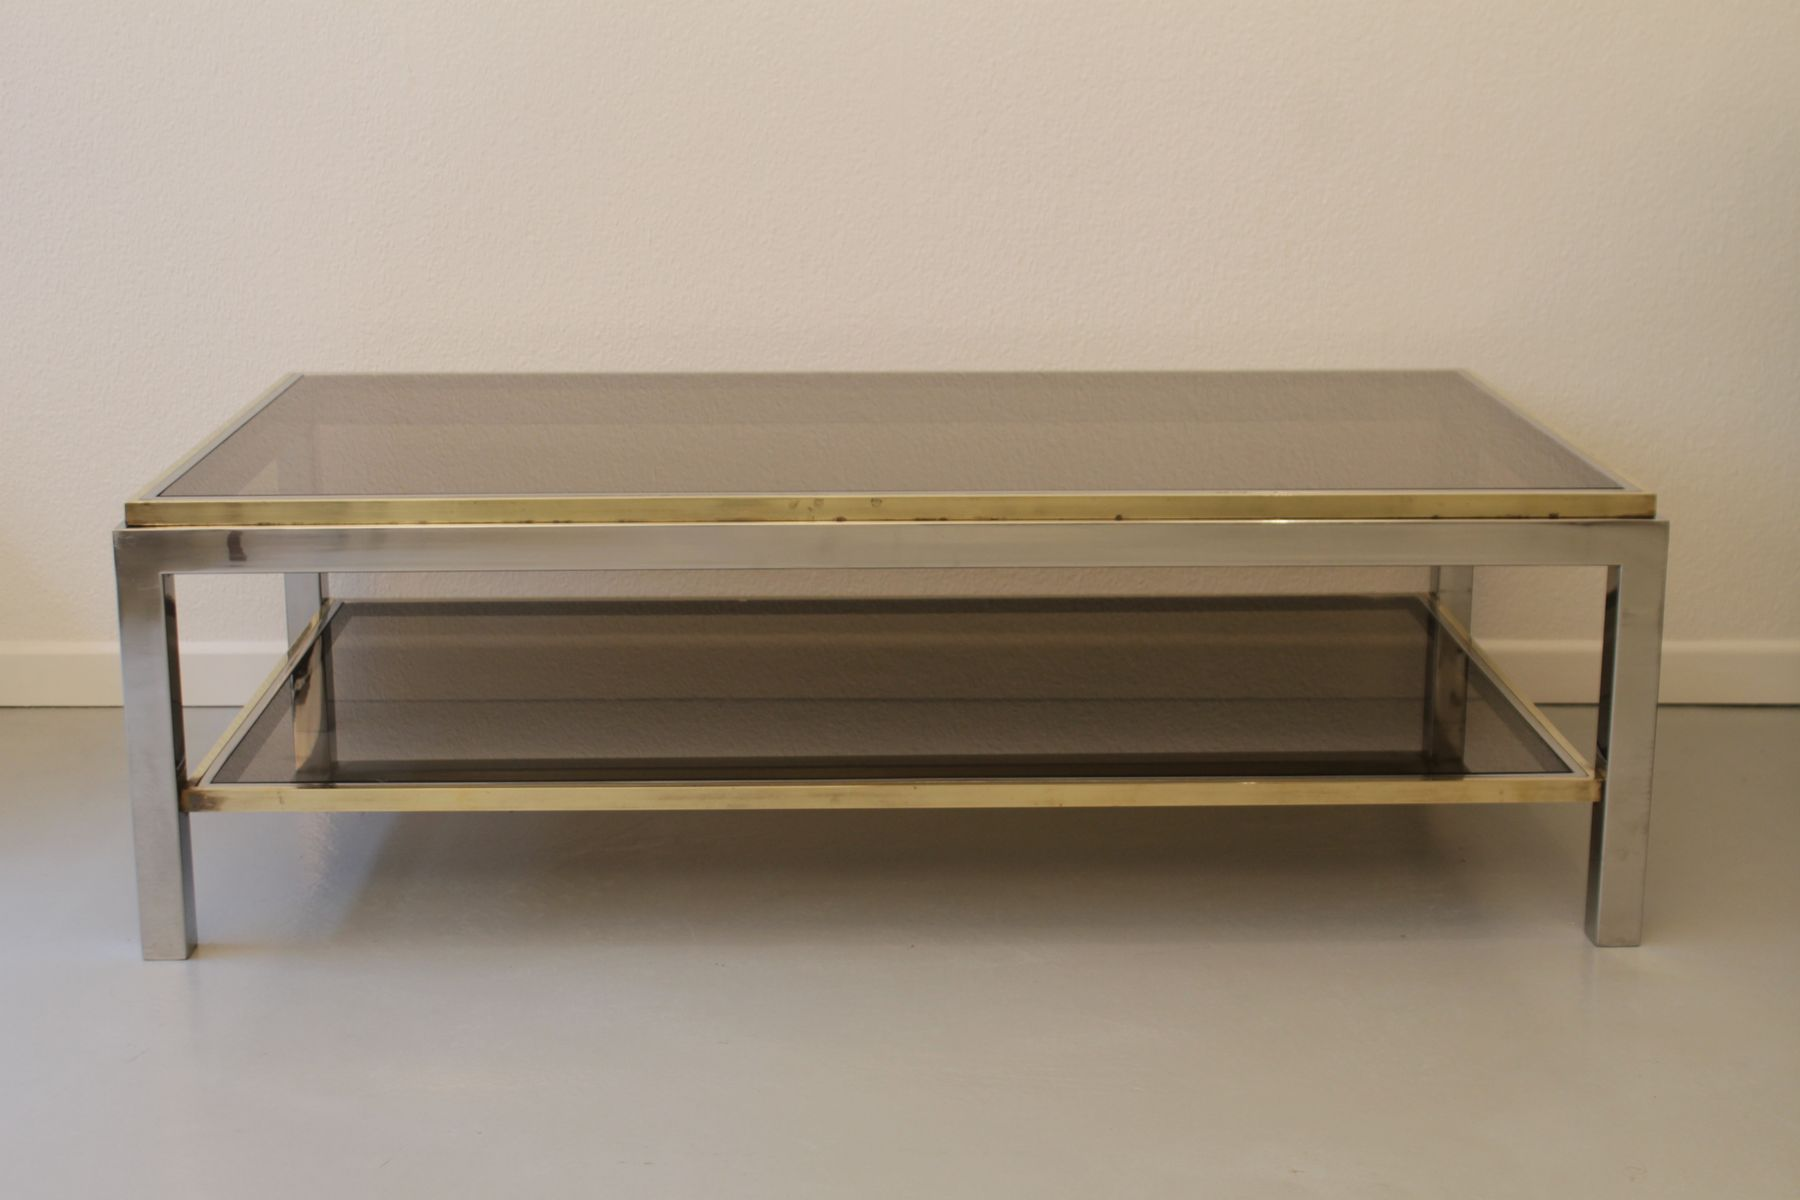 Flaminia coffee table by willy rizzo 1972 en vente sur pamono for Table willy rizzo